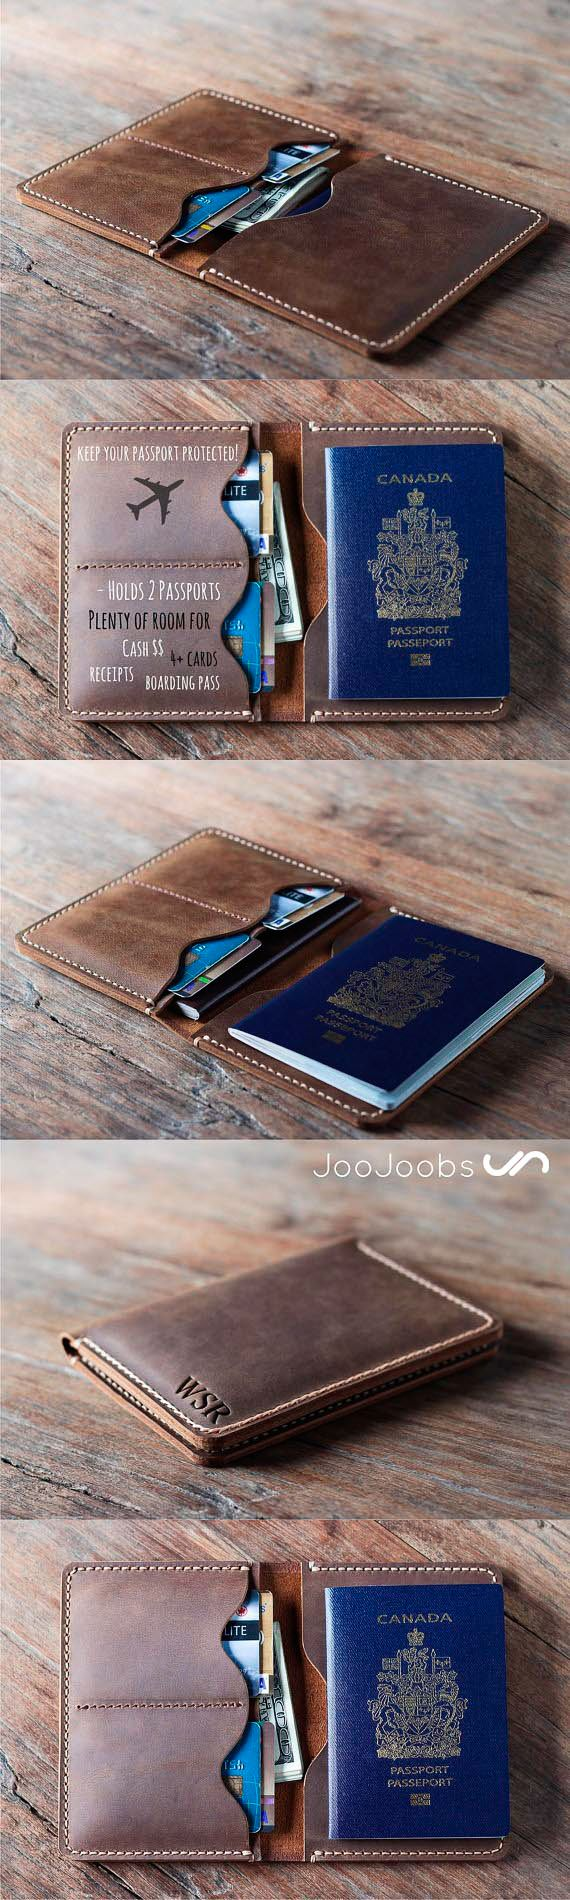 If you love to travel, your passport is #1 most important document you have to protect. The JooJoobs.com personalized handmade leather travel wallet is the perfect travel companion. Made from full grain distressed leather, this wallet will last you a life